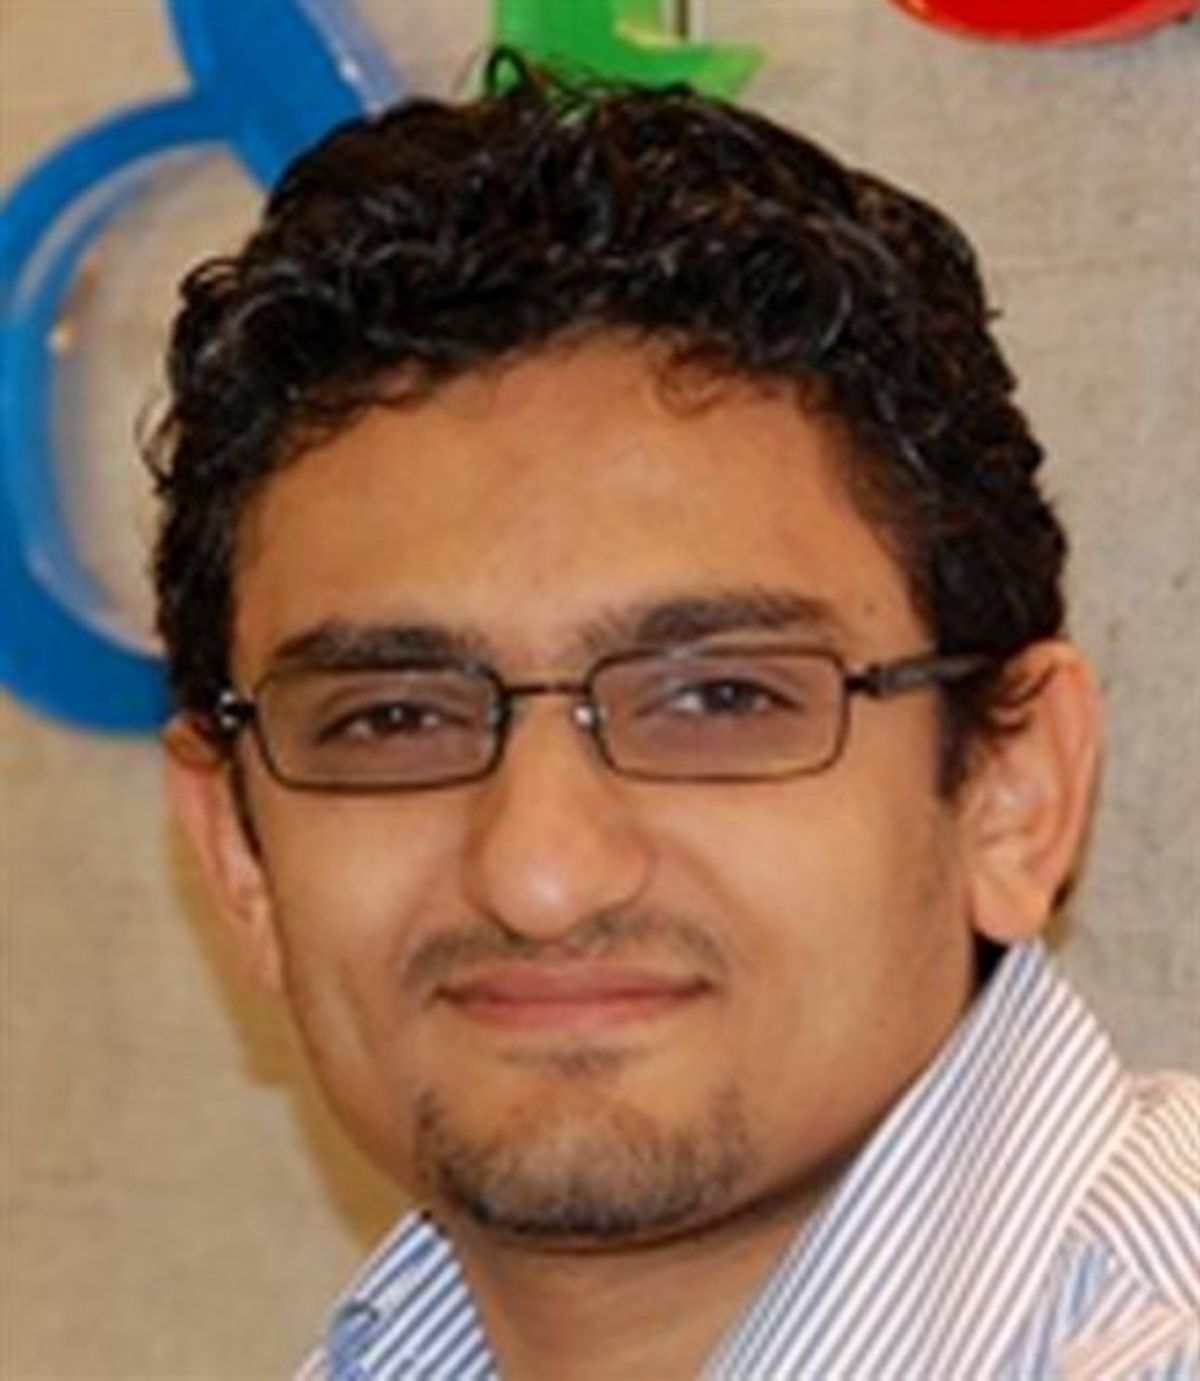 In this undated photo provided by Google Inc., Wael Ghoneim, a Google Inc. marketing manager, is shown. An Egyptian businessman says Ghoneim, held in anti-government protests, will go free Monday, Feb. 7, 2011. (AP Photo/Google Inc.) ** NO SALES ** (AP)